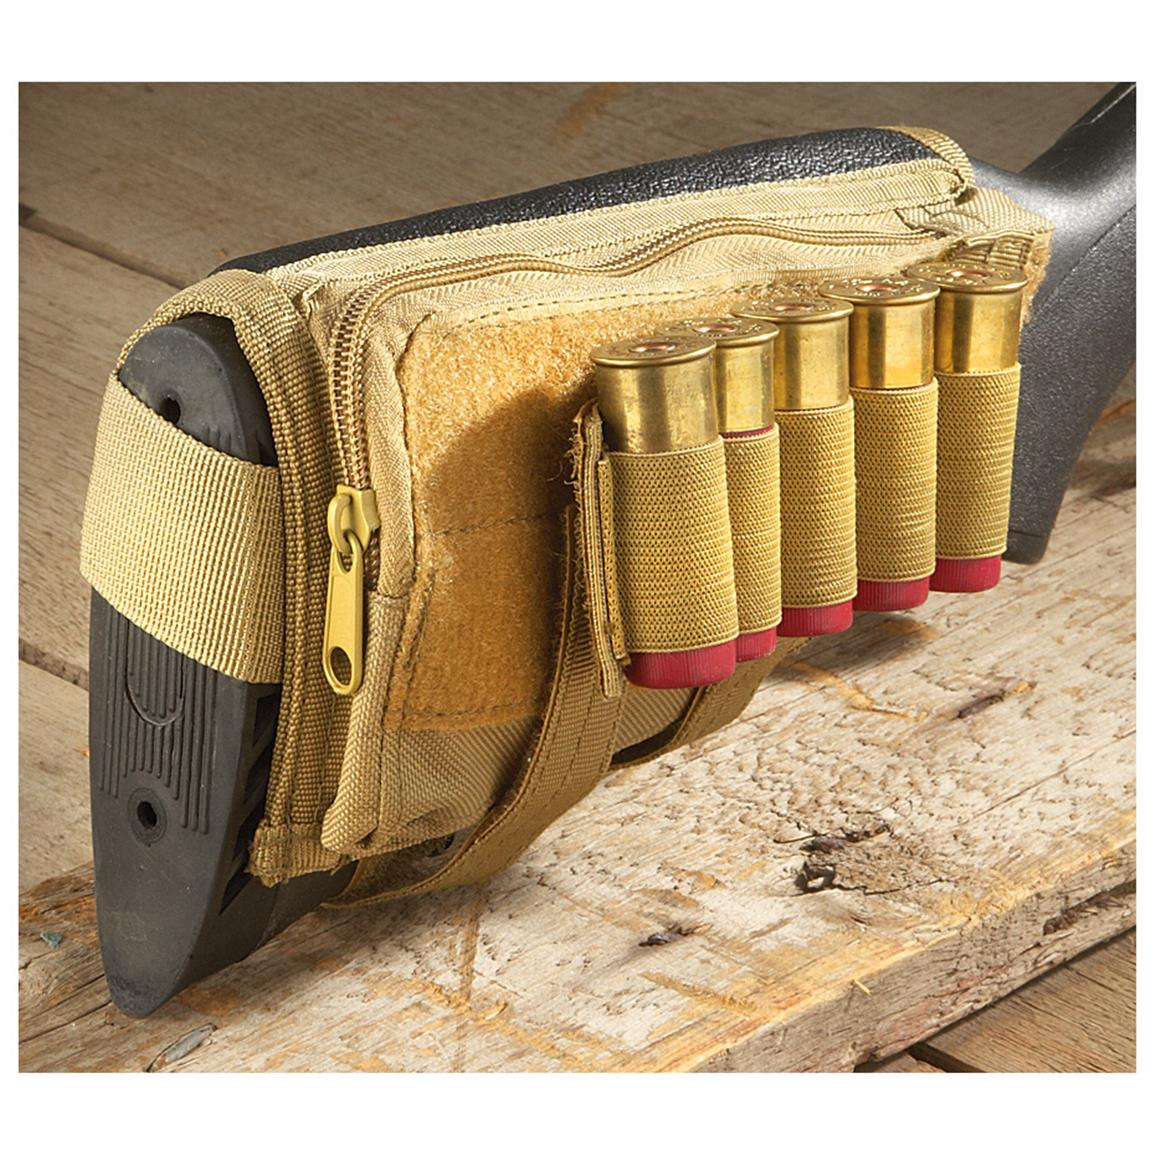 Fox Tactical Butt Stock Cheek Rest, Coyote Tan